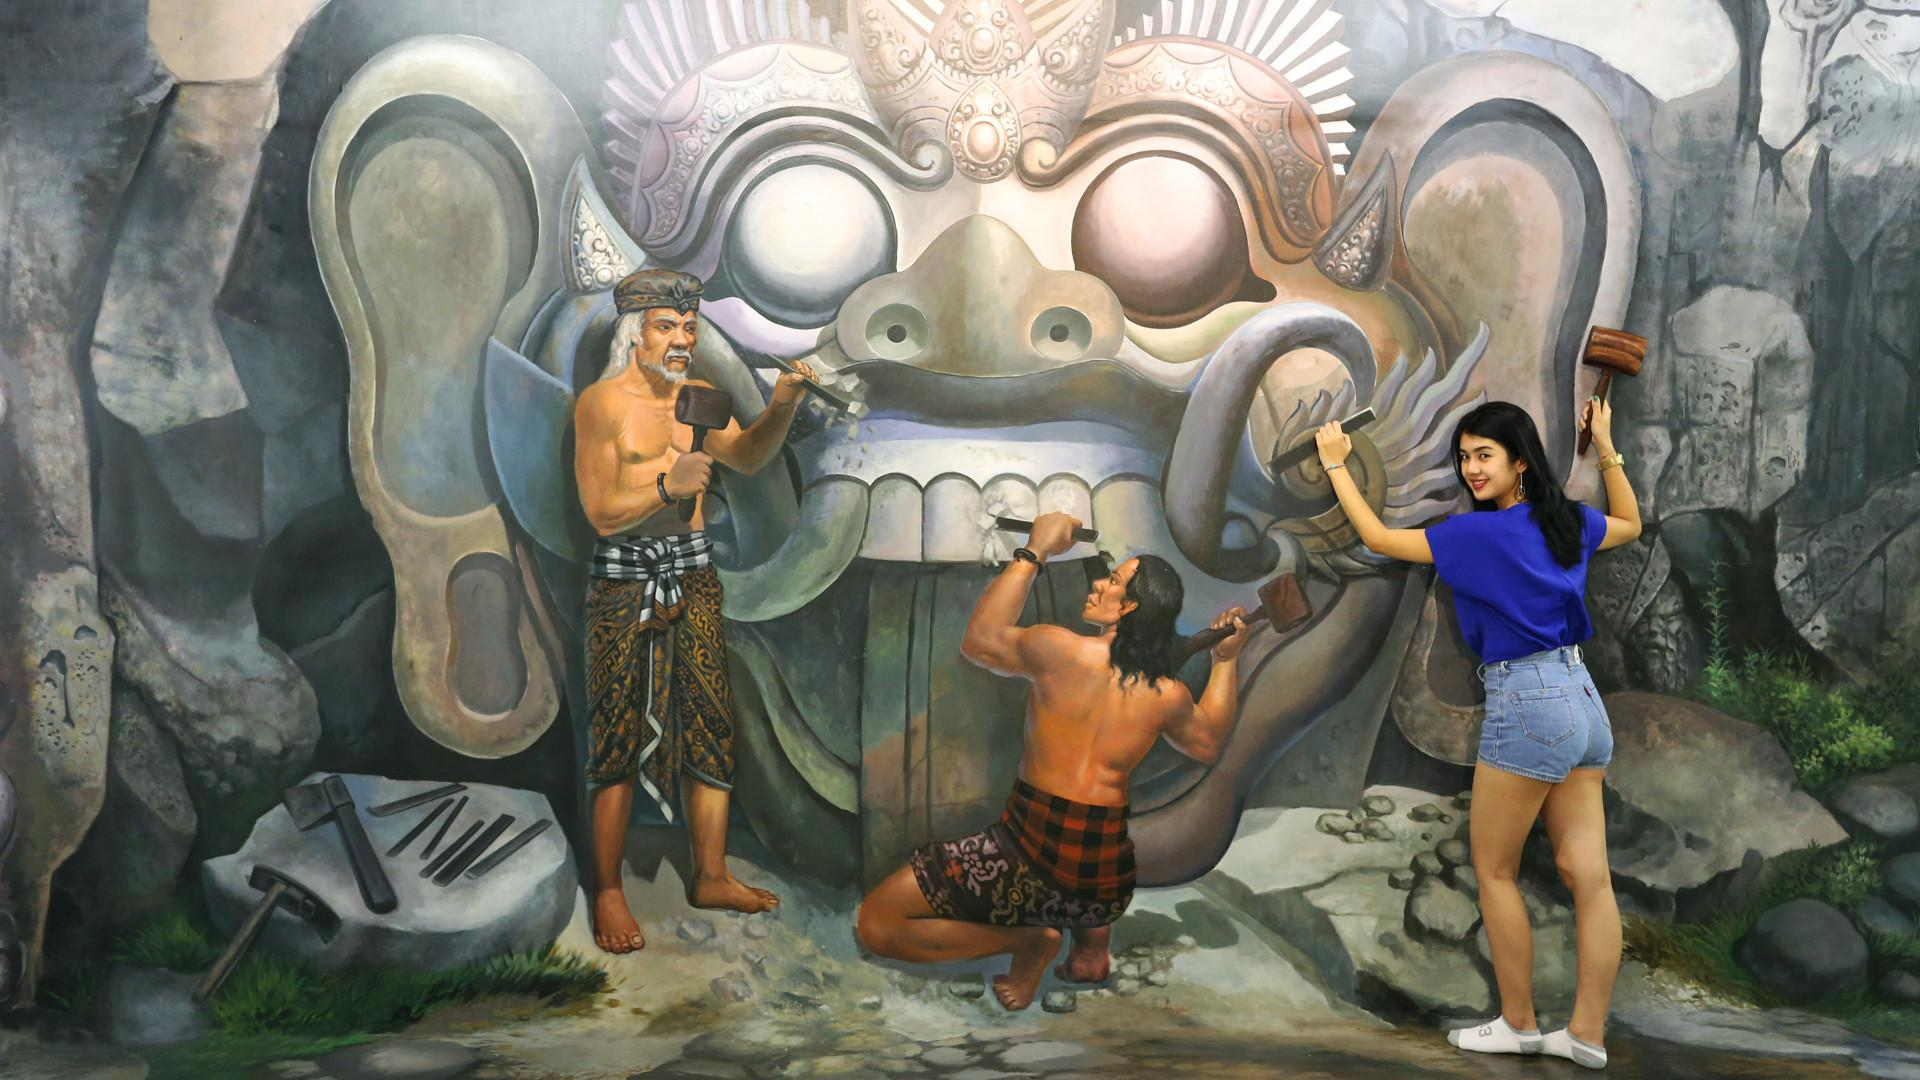 Museum Bali 3d Iambali To Travel To The 3d Museum Bali